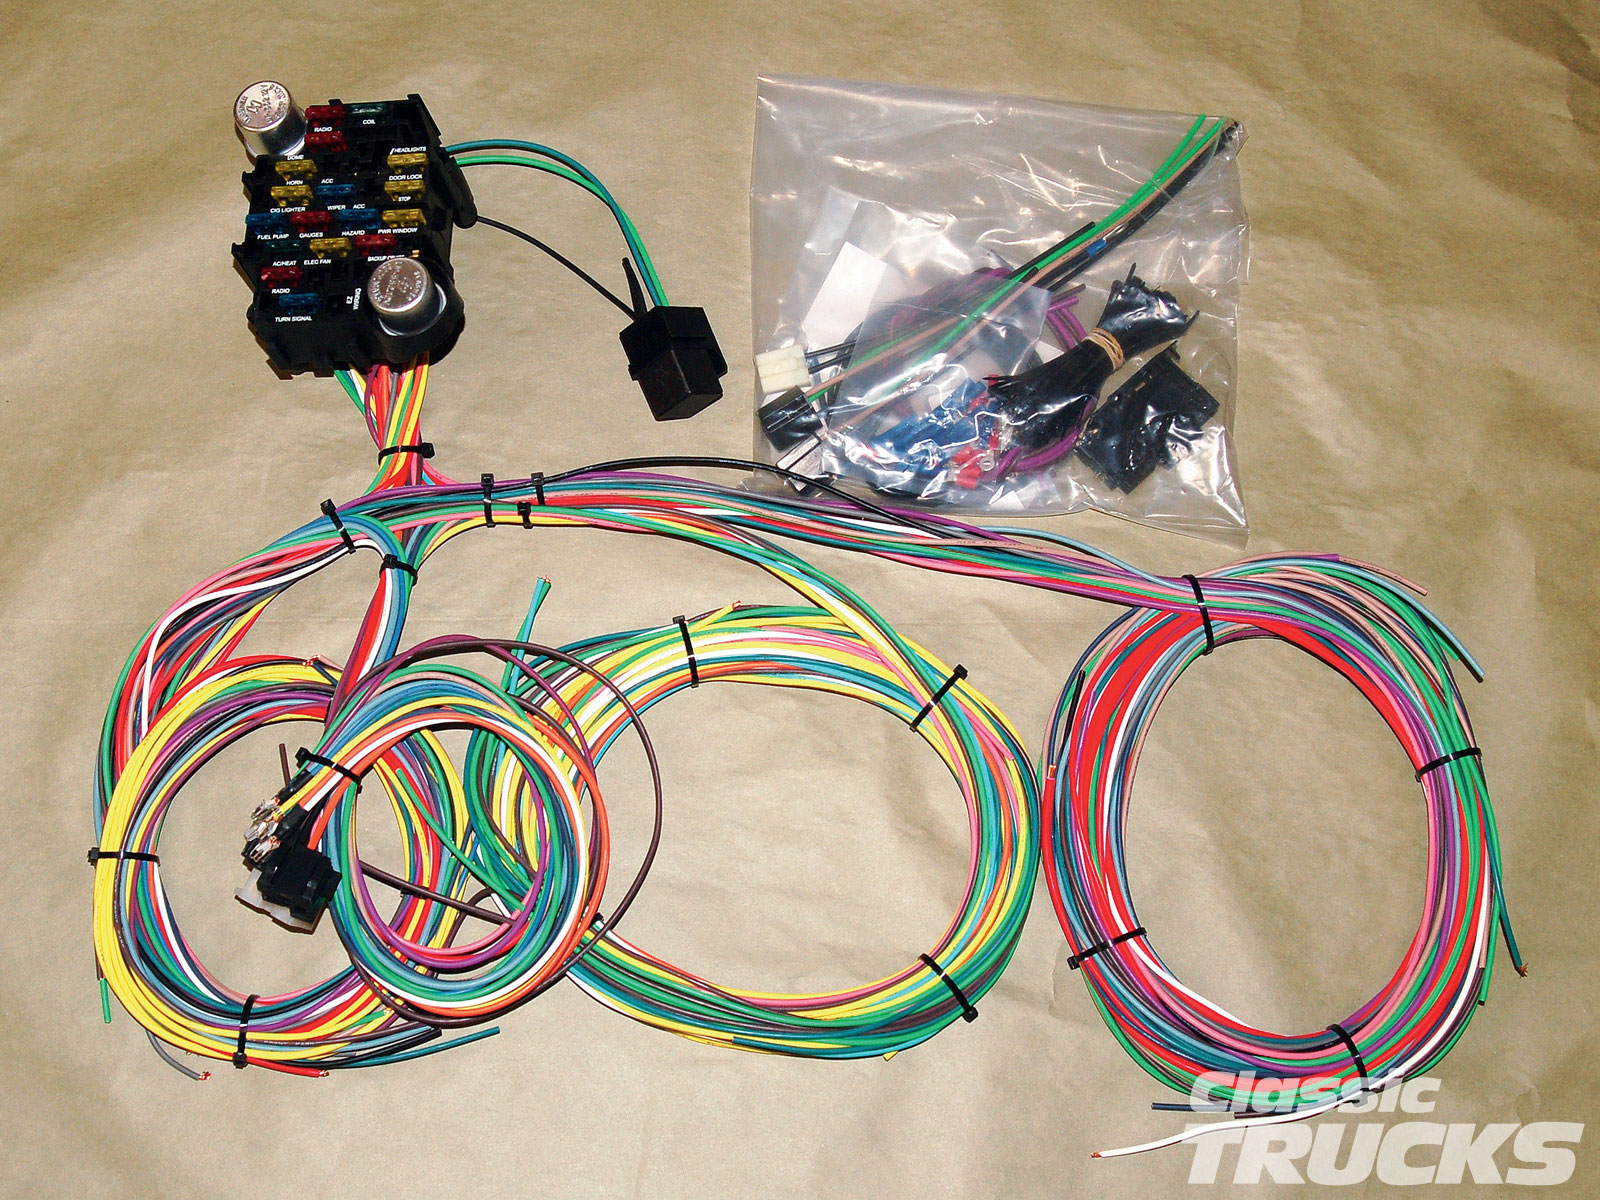 1010clt 02 o aftermarket wiring harness install kit?resize=640%2C480 how much does a wire harness cost to replace hobbiesxstyle how much does it cost to replace a wiring harness at edmiracle.co